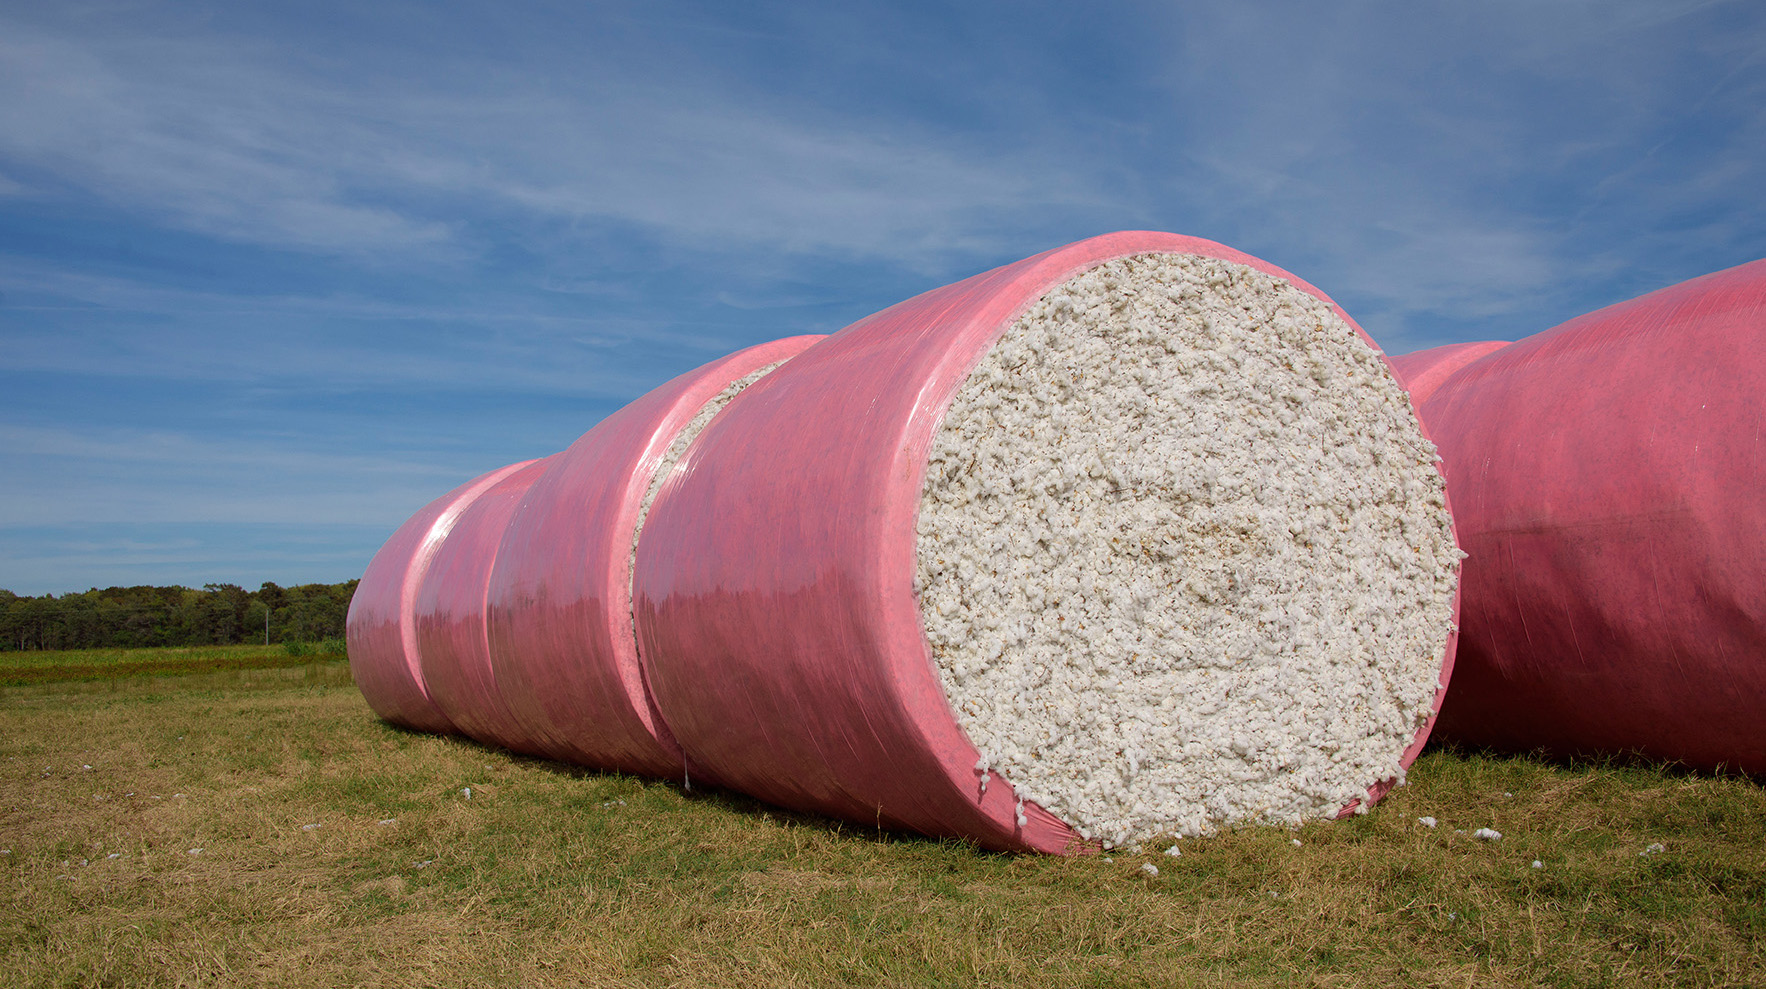 Bales of pink-wrapped, round cotton bales sit in a field.